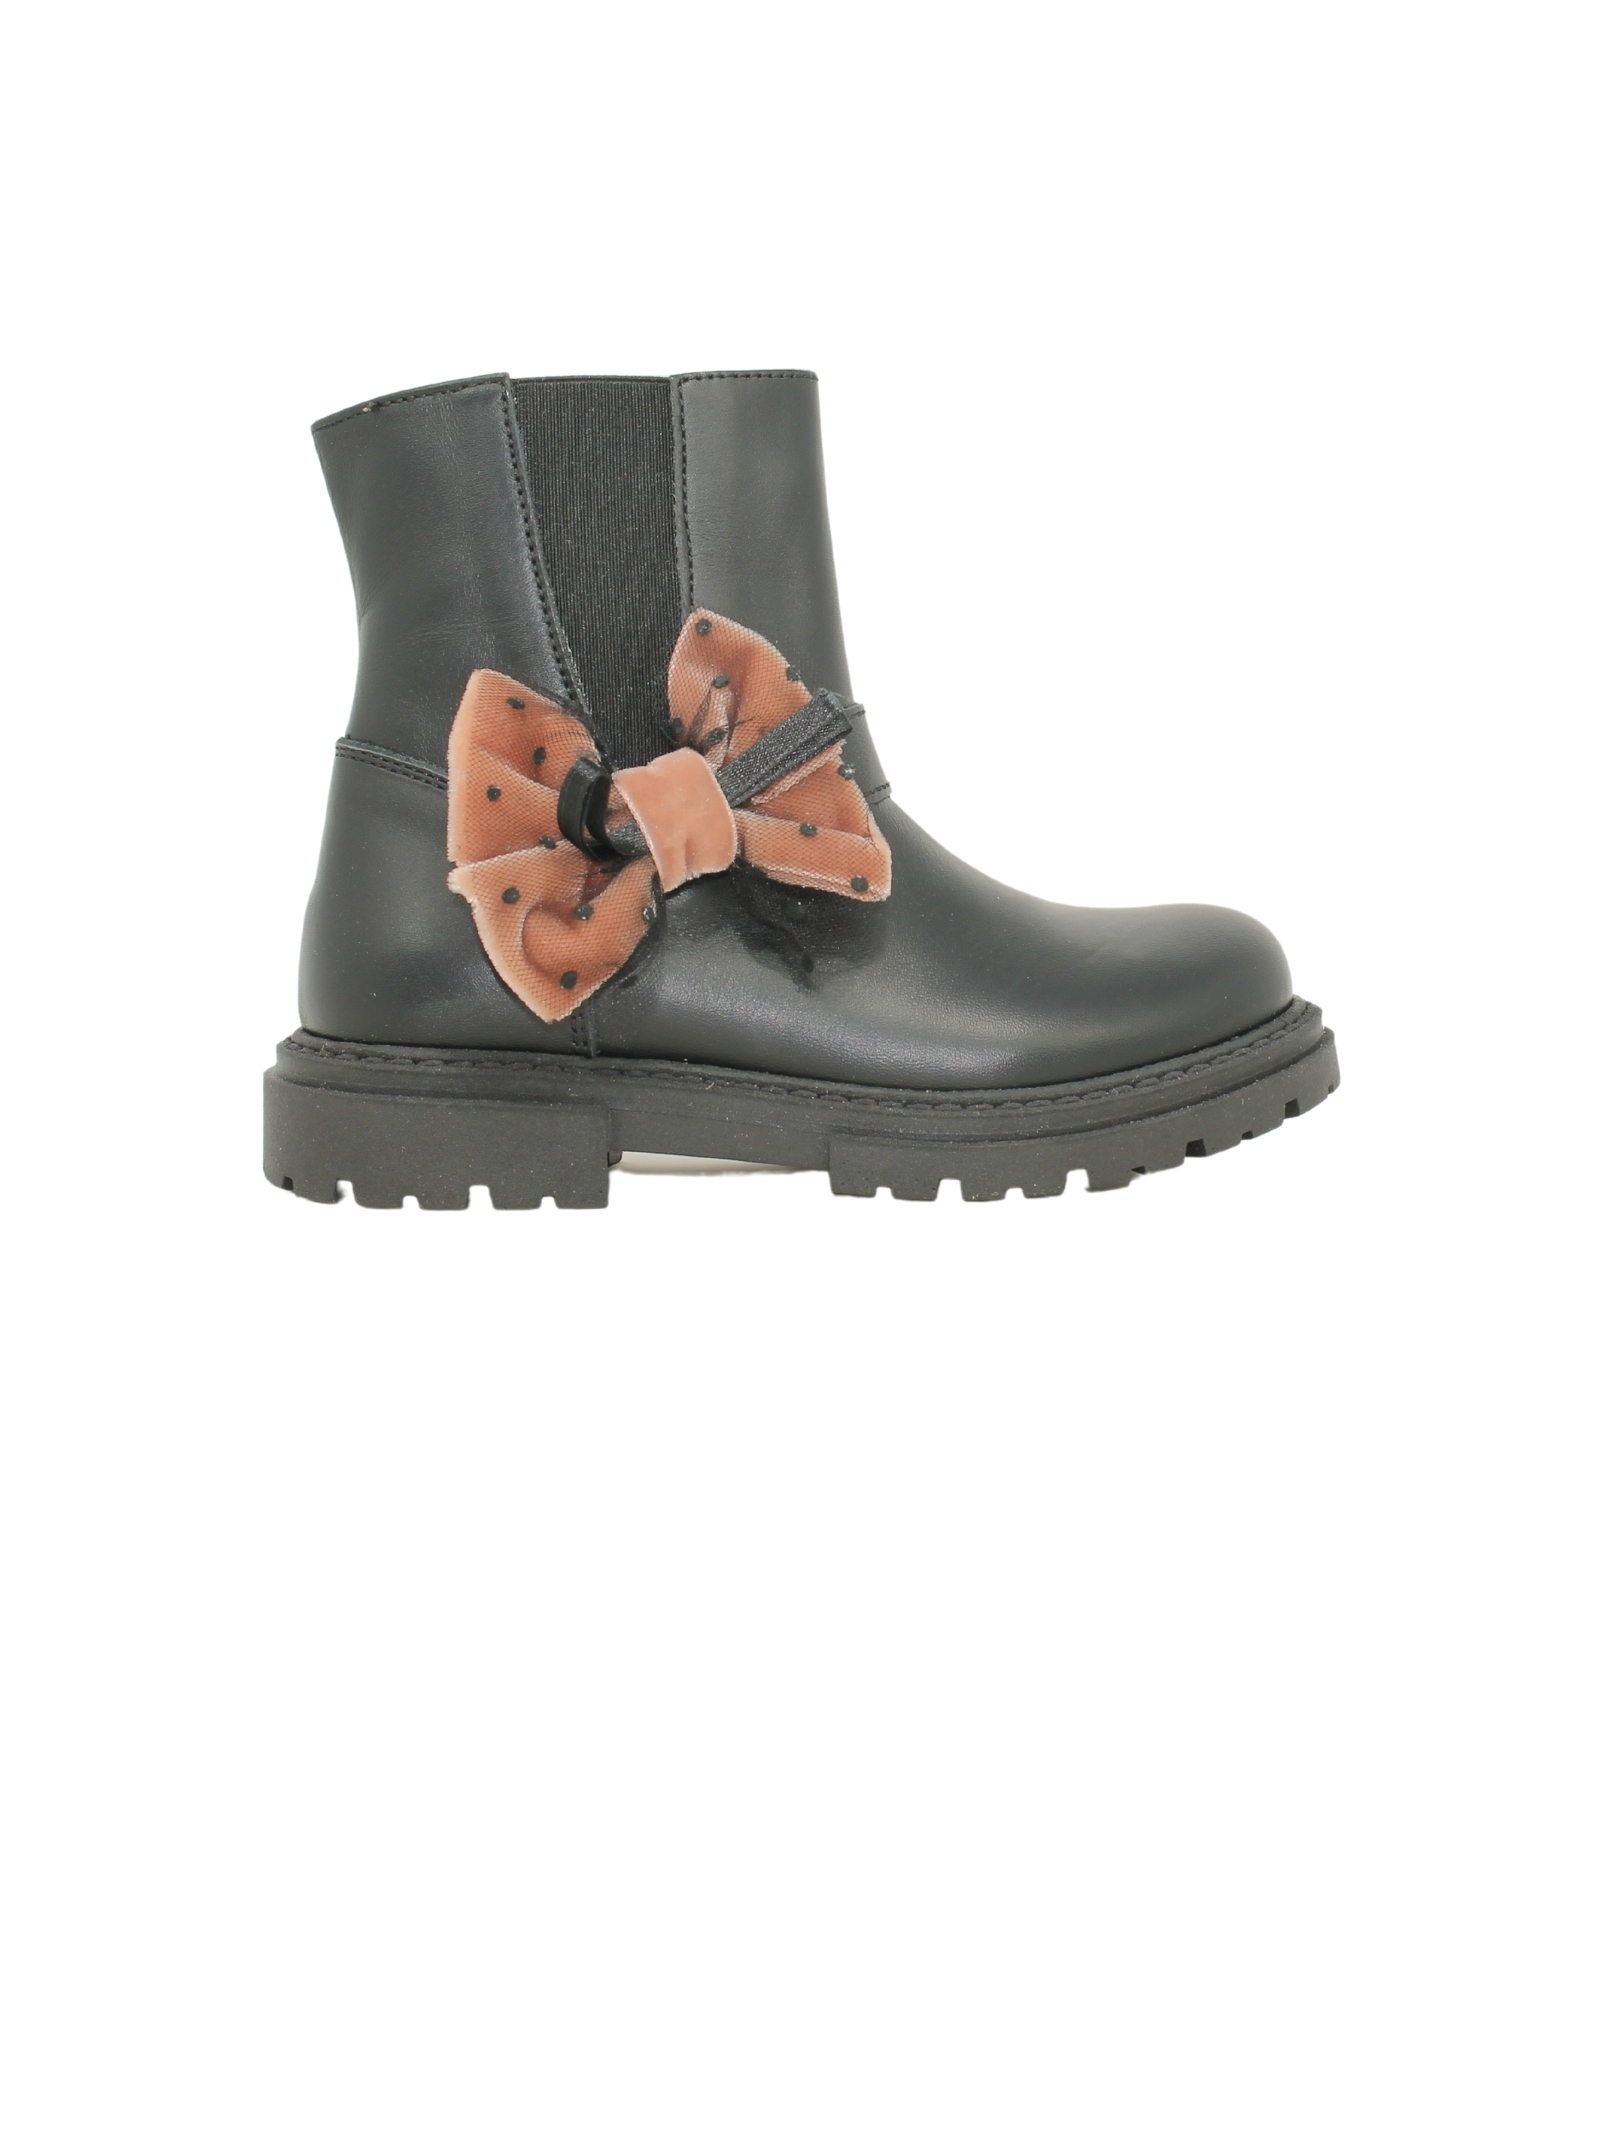 Girls' Tulle Bow Ankle Boots WALKEY |  | Y1A5415120092999NERO